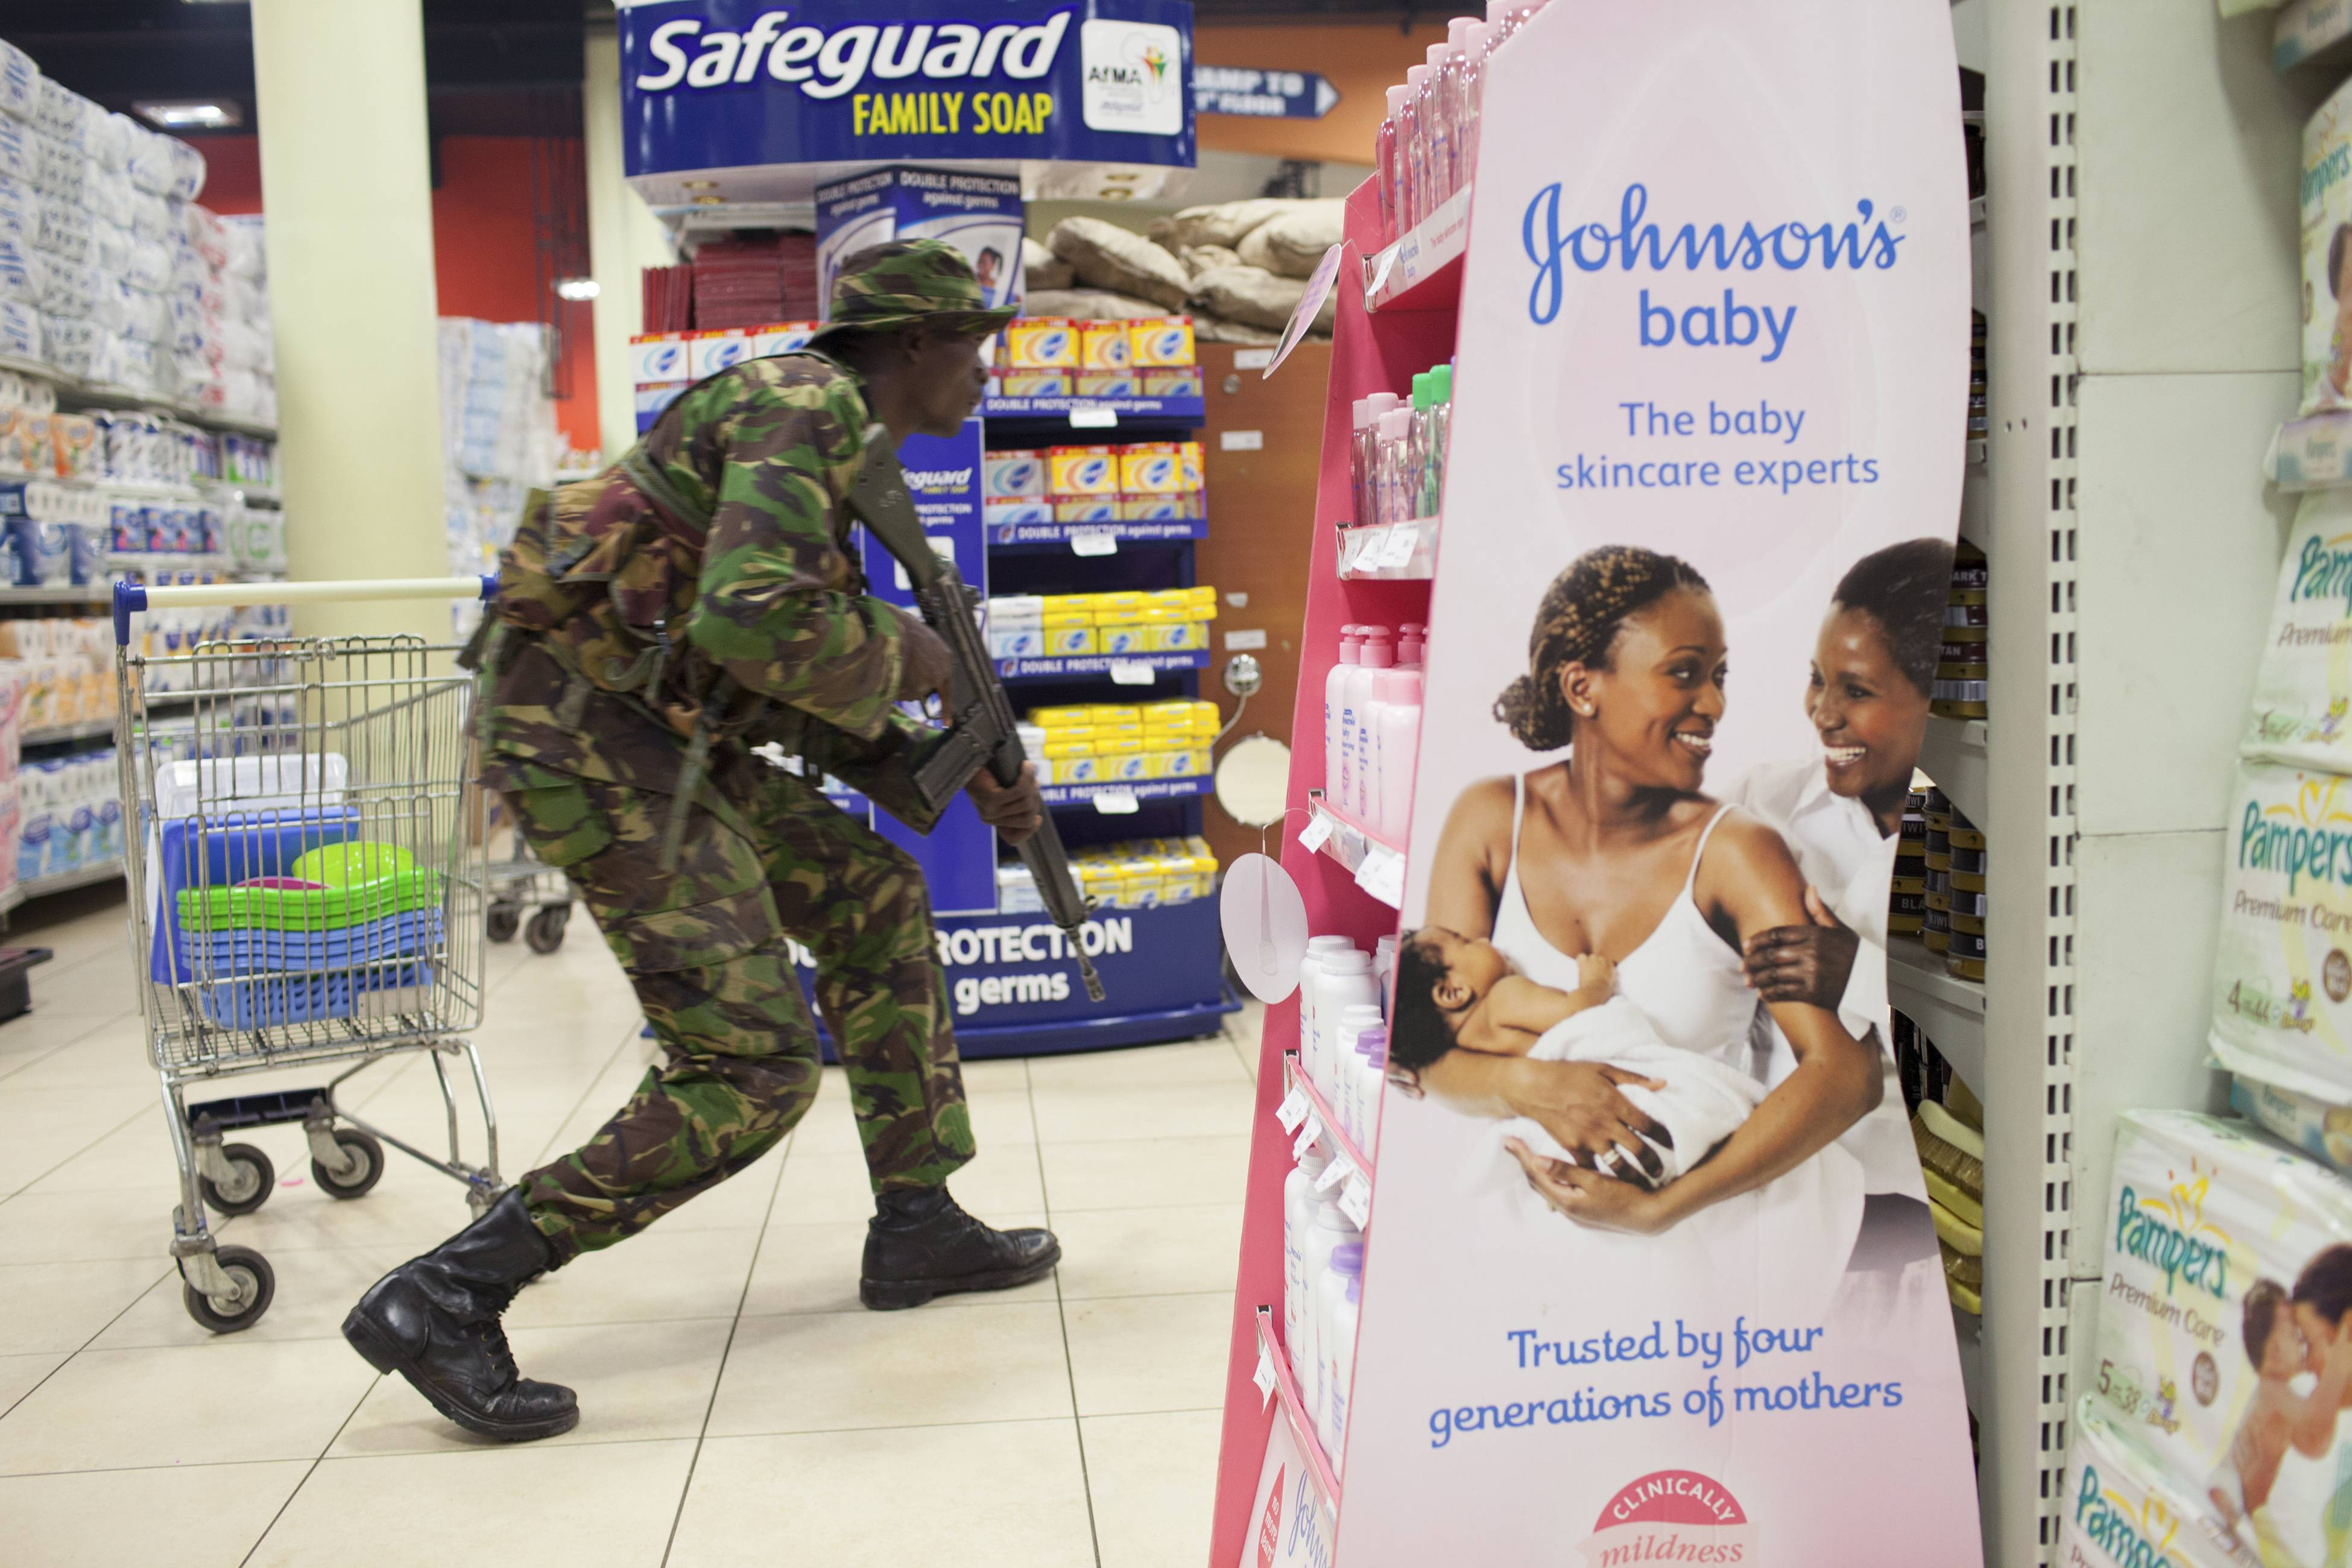 A soldier searches for armed militants who entered the Westgate Mall in Nairobi, Kenya, attacking people at the upscale shopping mall in September. This image was part of New York Times photographer Tyler Hicks' portfolio that was awarded the 2014 Pulitzer Prize for breaking news photography.